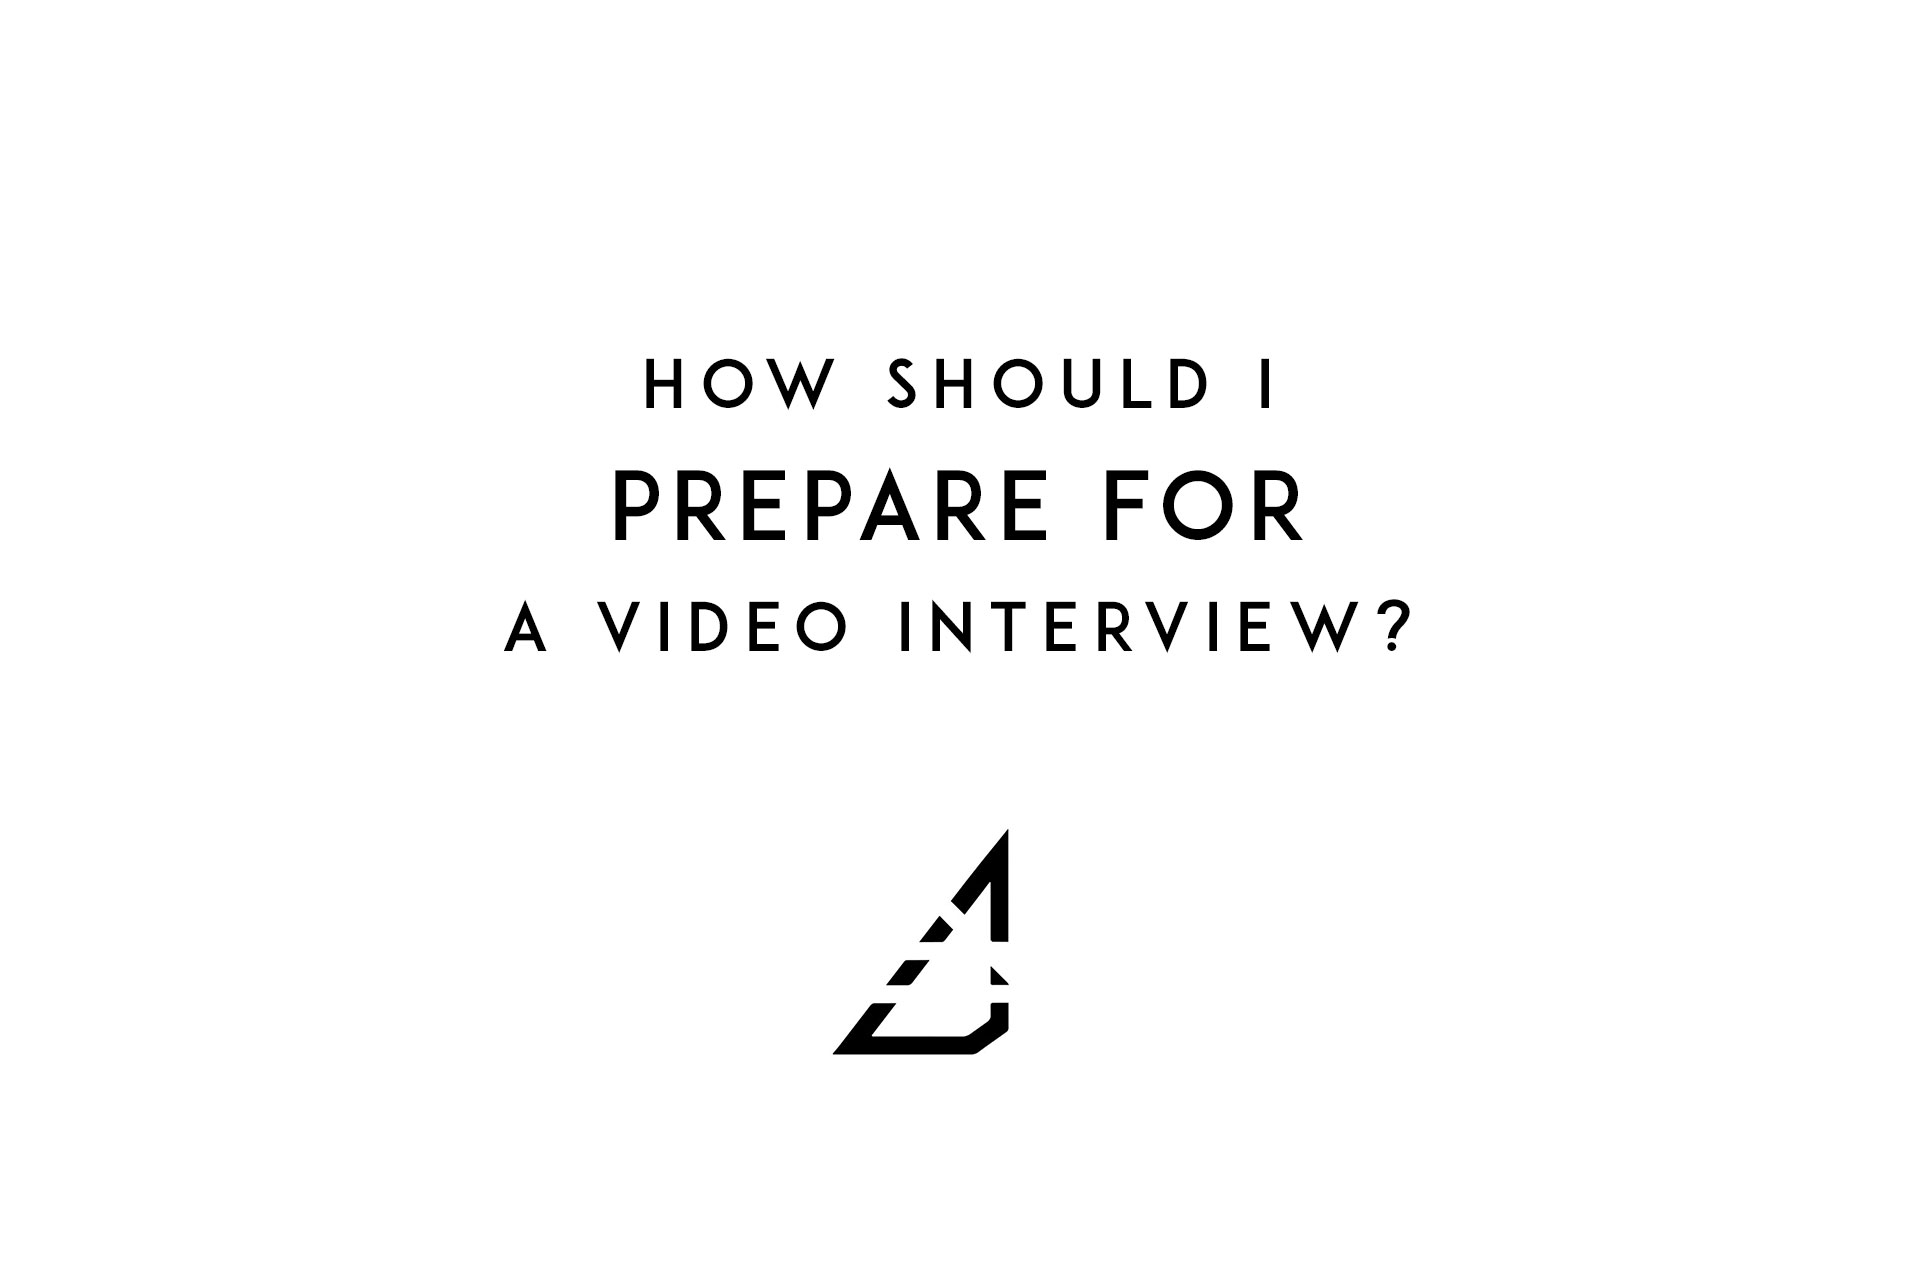 Filming a video interview: How to be a good interviewee